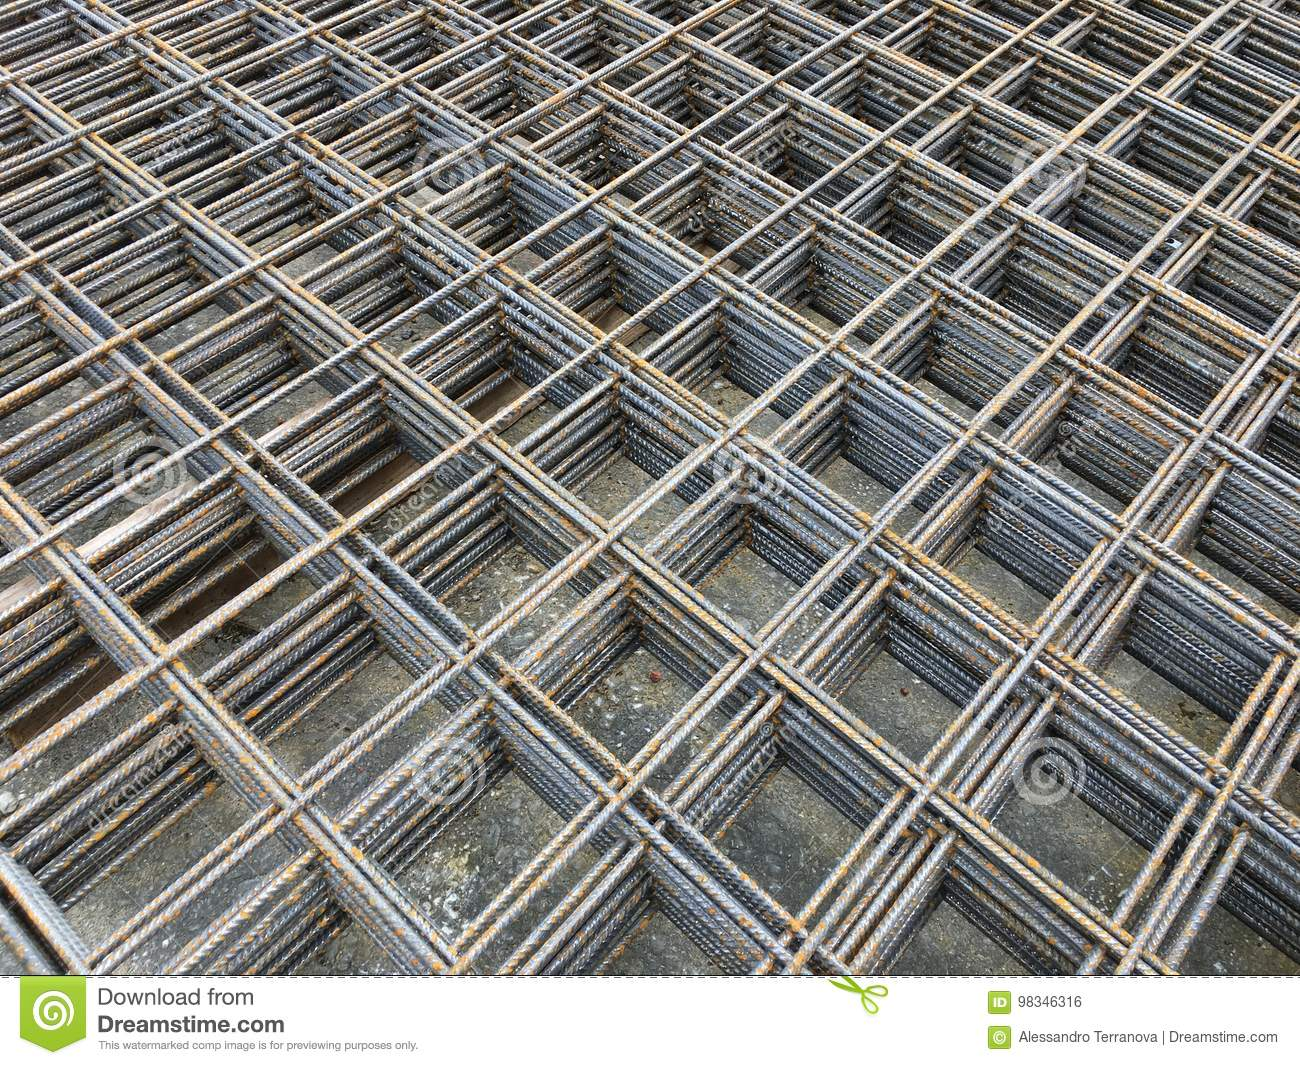 Welded Wire Mesh stock photo. Image of based, concrete - 98346316